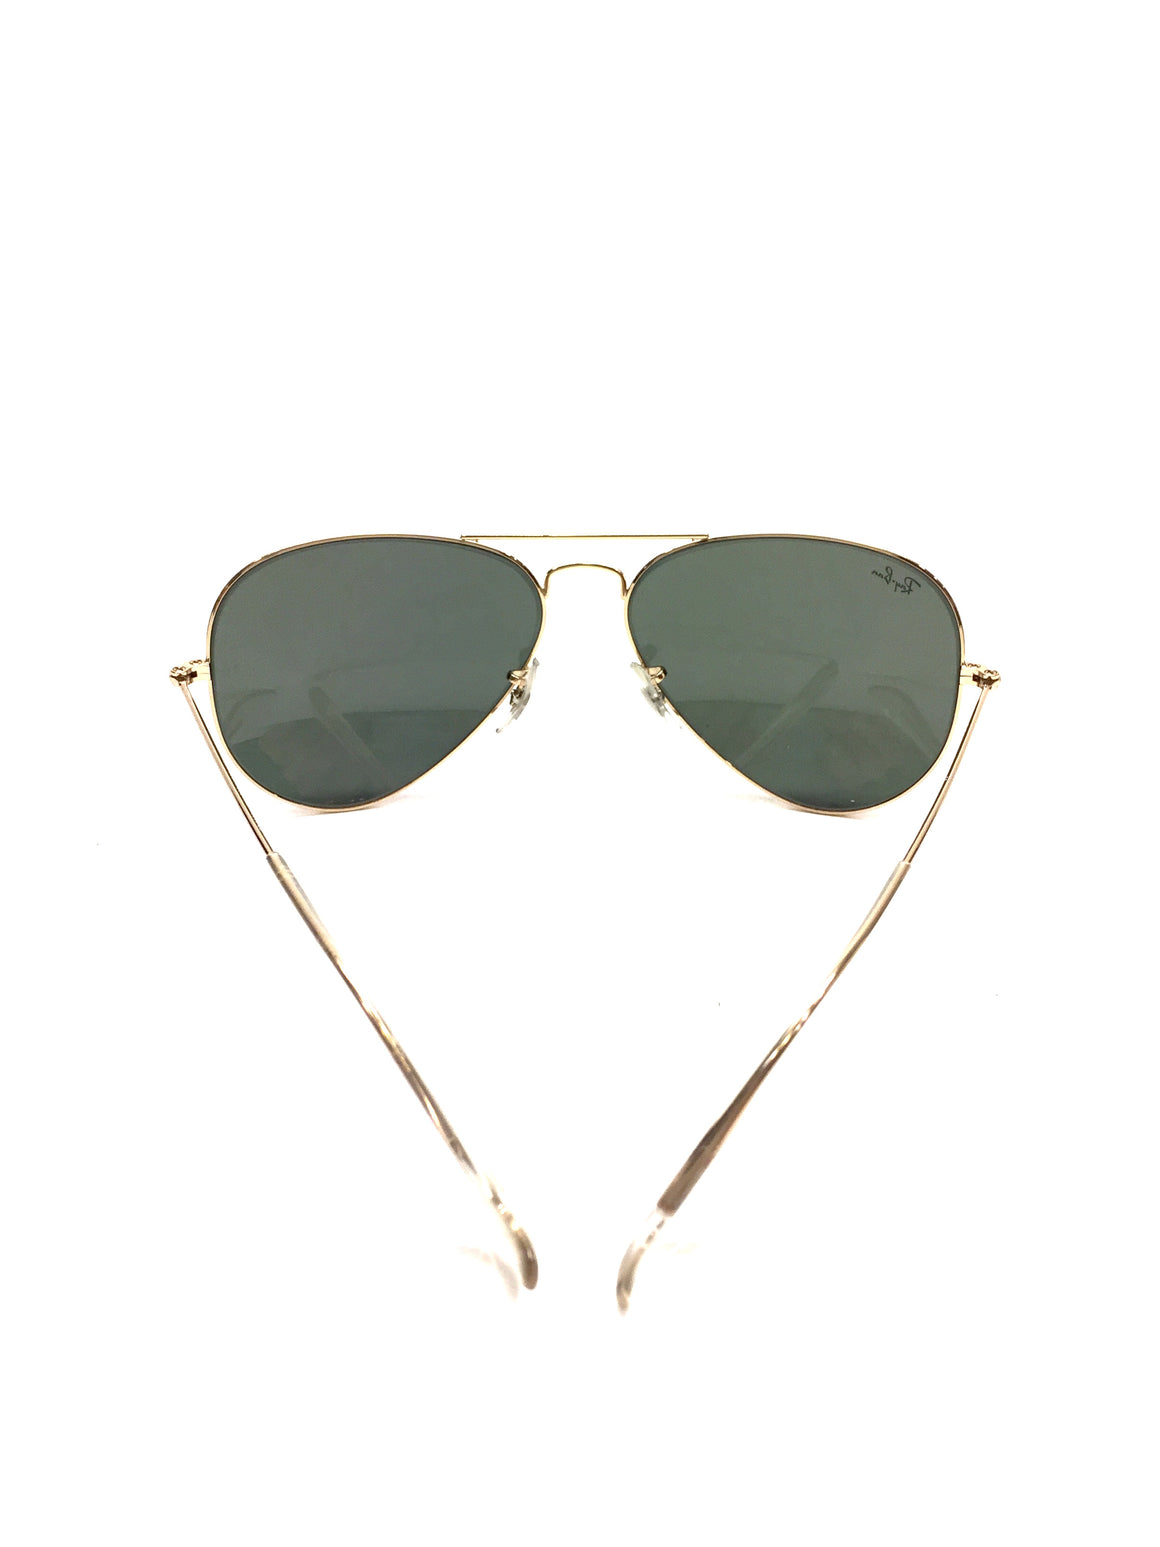 RAY BAN Goldtone Metal Frame Dark-Green Tinted Lenses Aviator Sunglasses